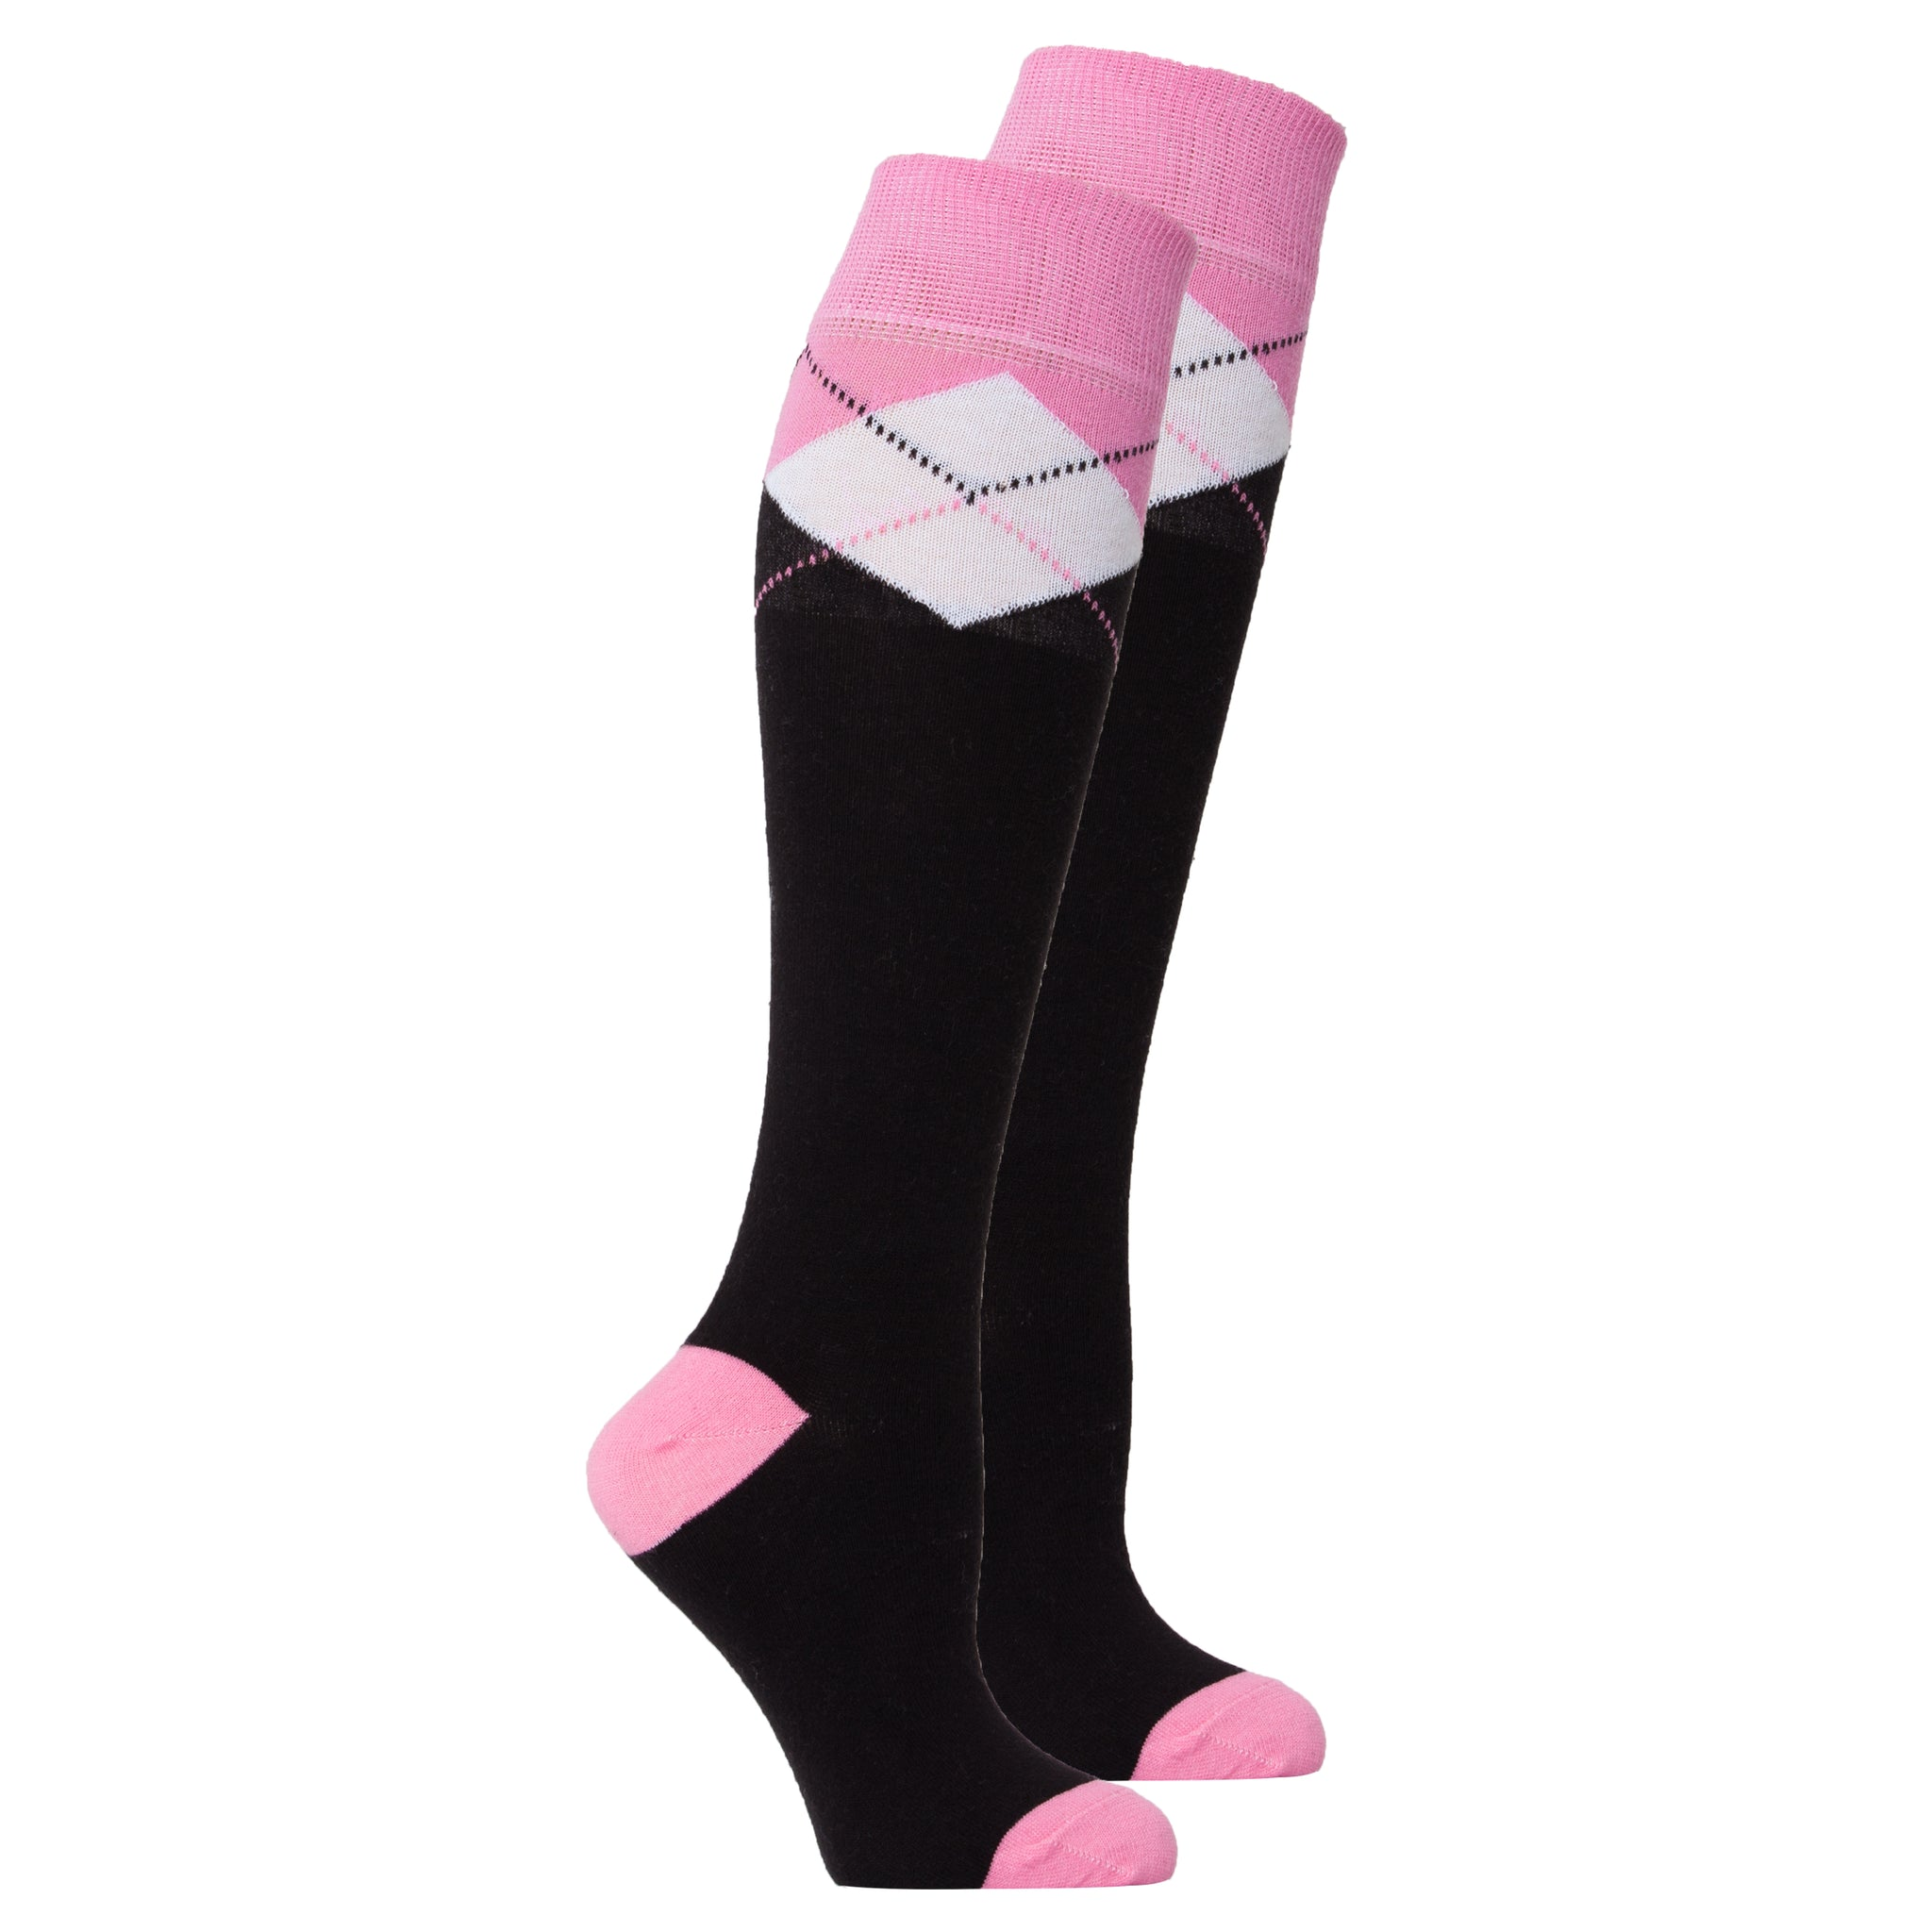 Women's Black Candy Knee High Socks